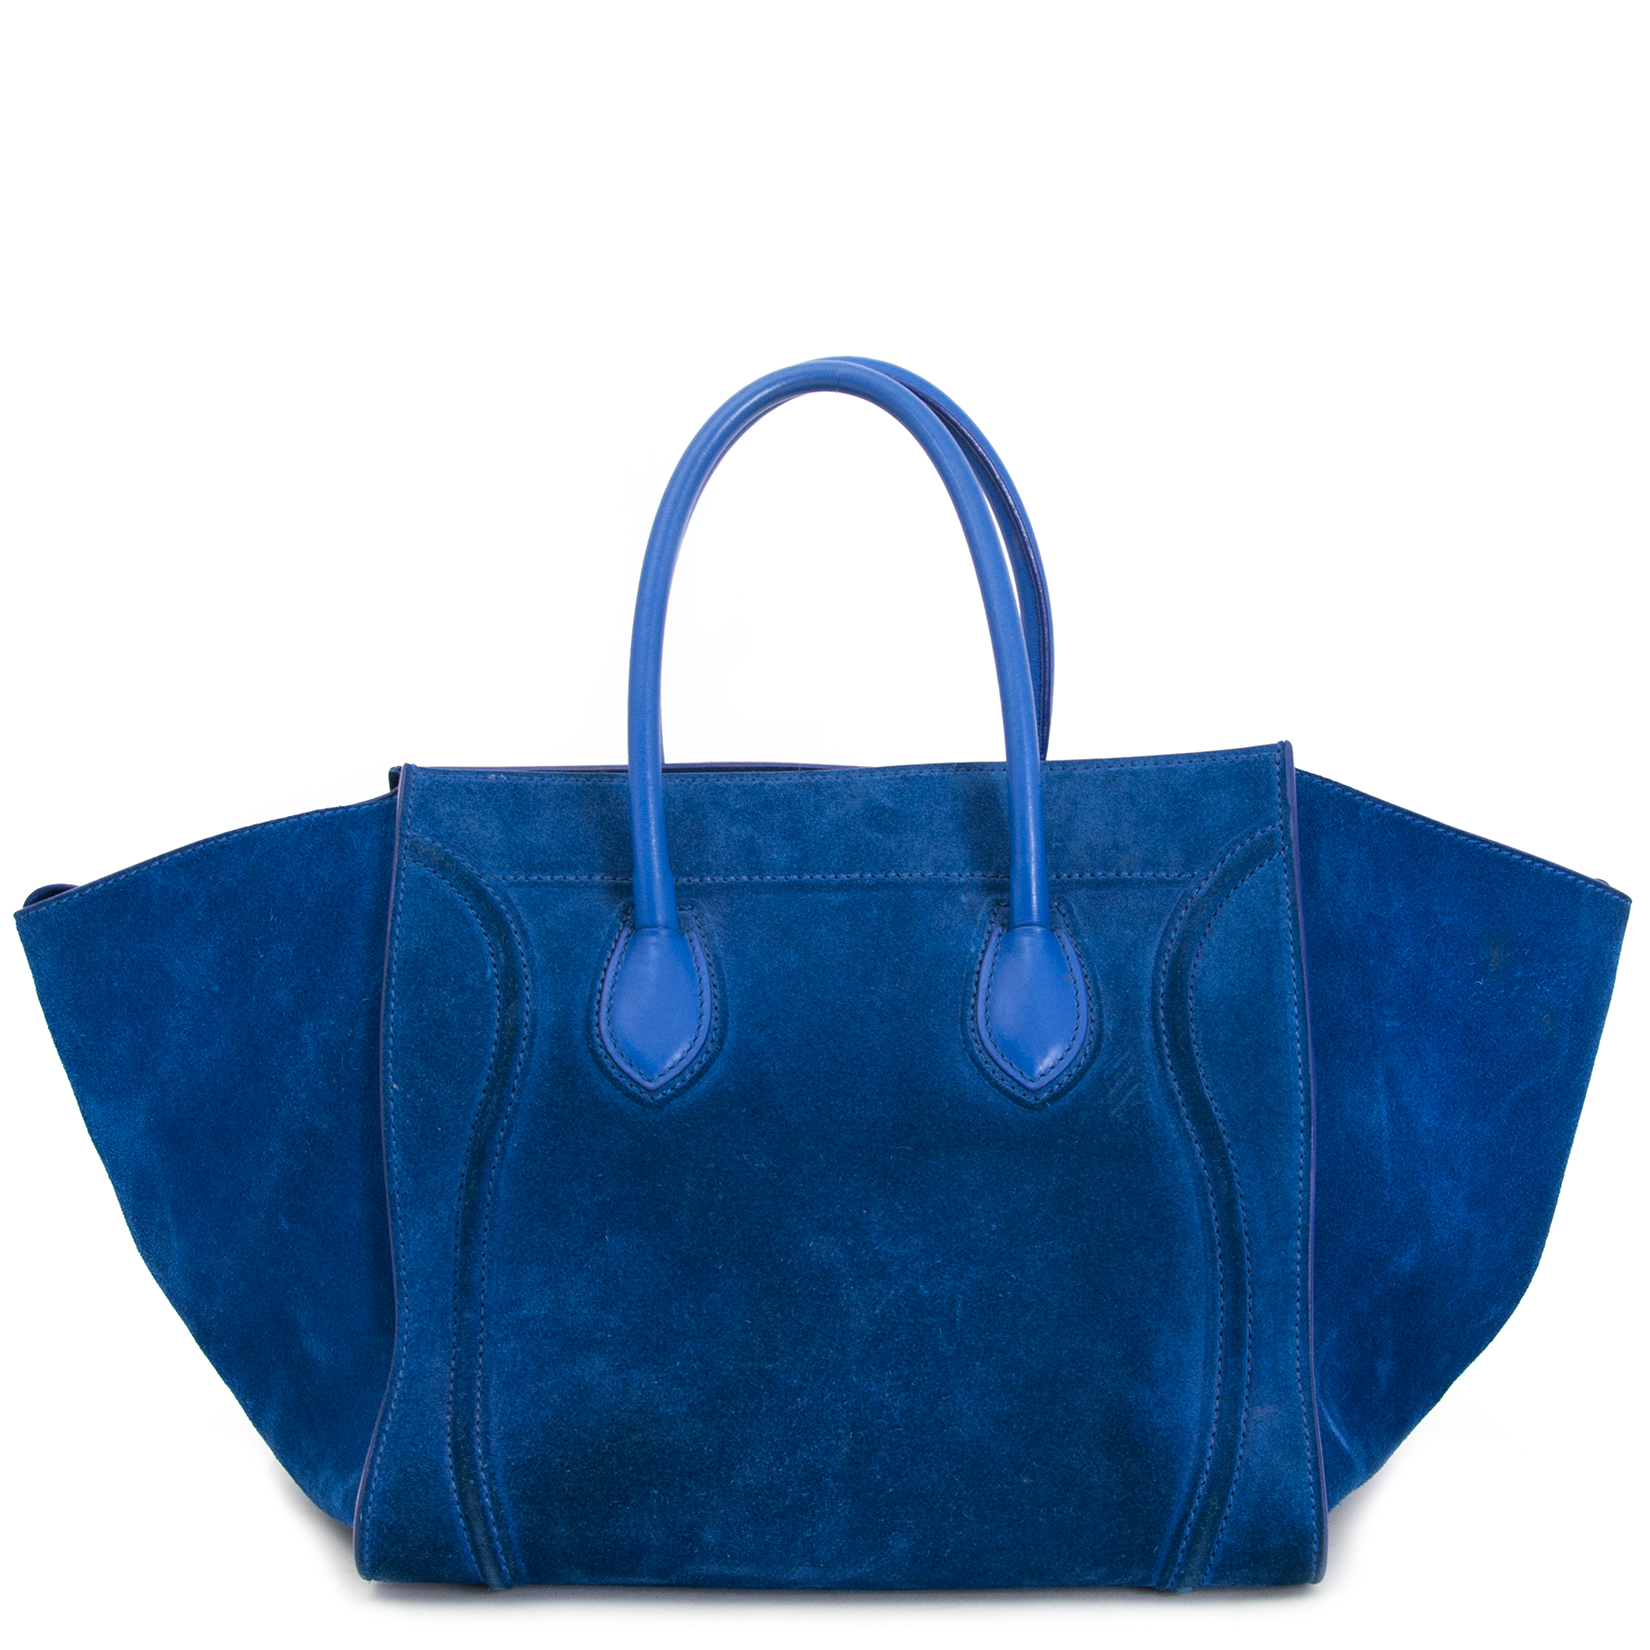 Buy your preloved Céline Cobalt Blue Suede Phantom Cabas